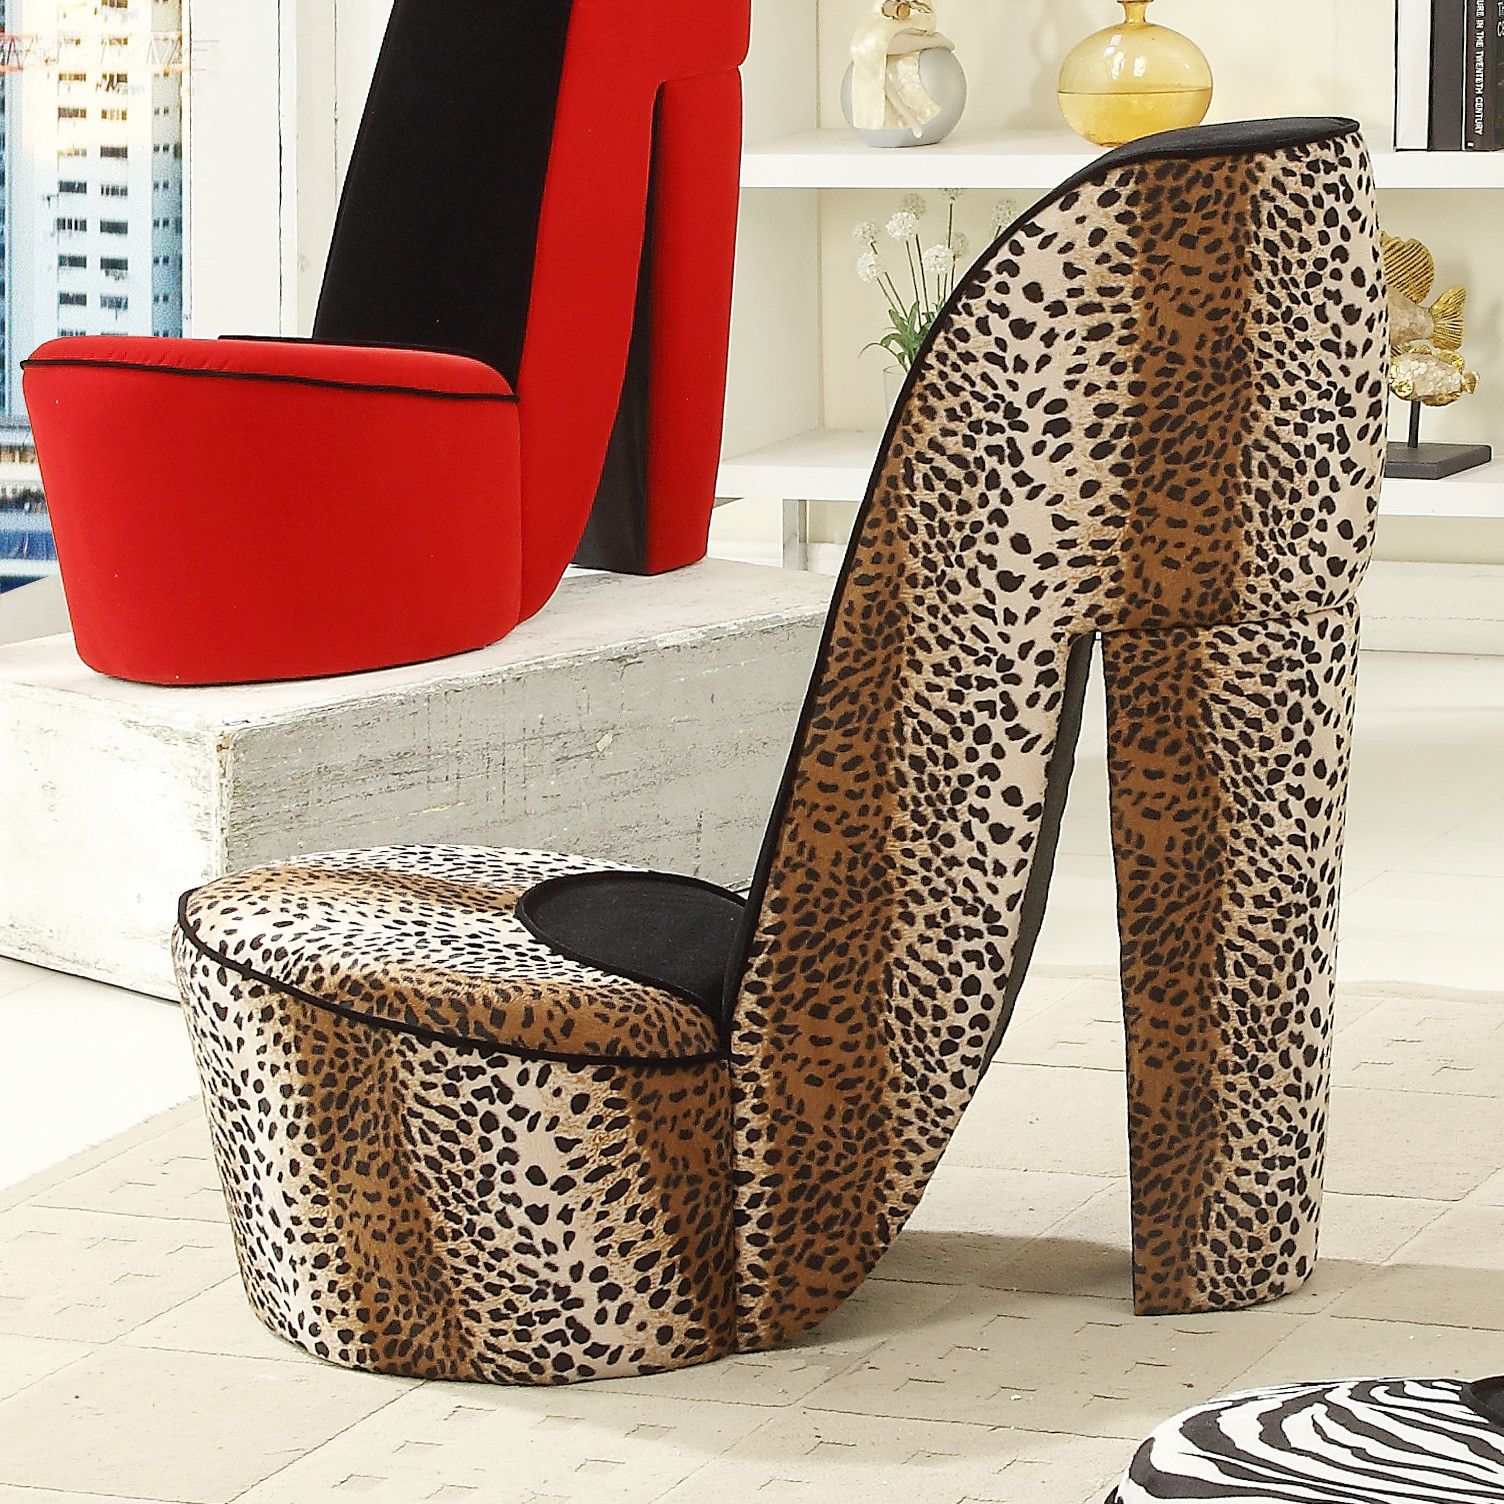 100 Giant High Heel Shoe Chair Kitchen Table Decorating Ideas